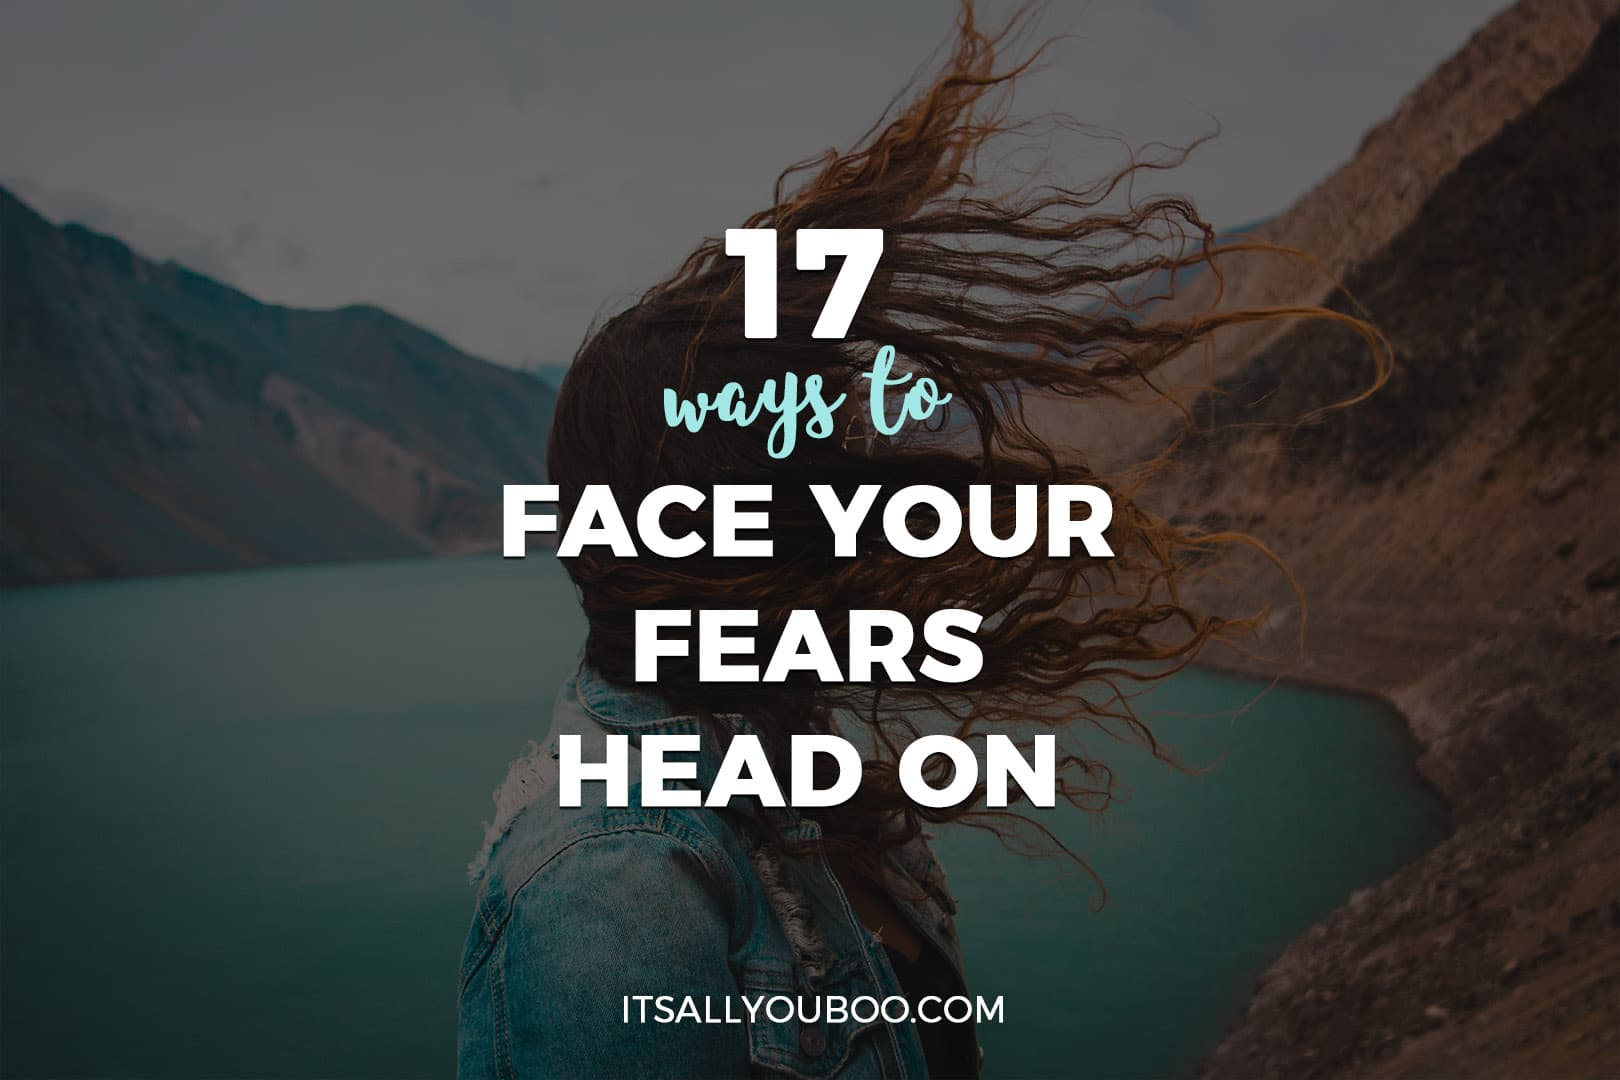 17 Ways to Face Your Fears Head On